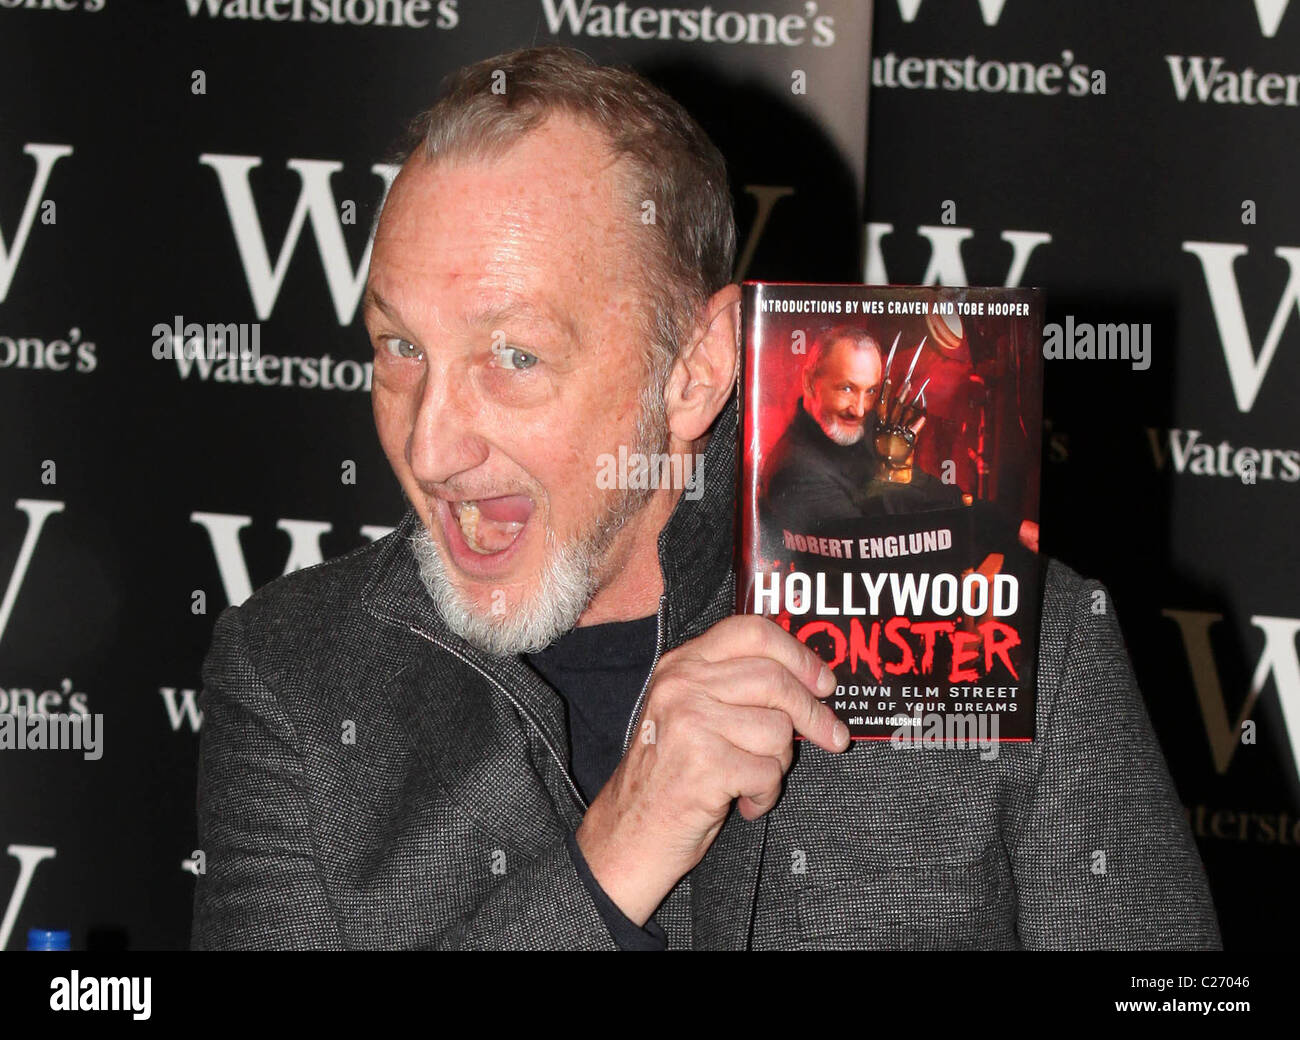 Robert Englund cult actor, best known for playing Freddy ...